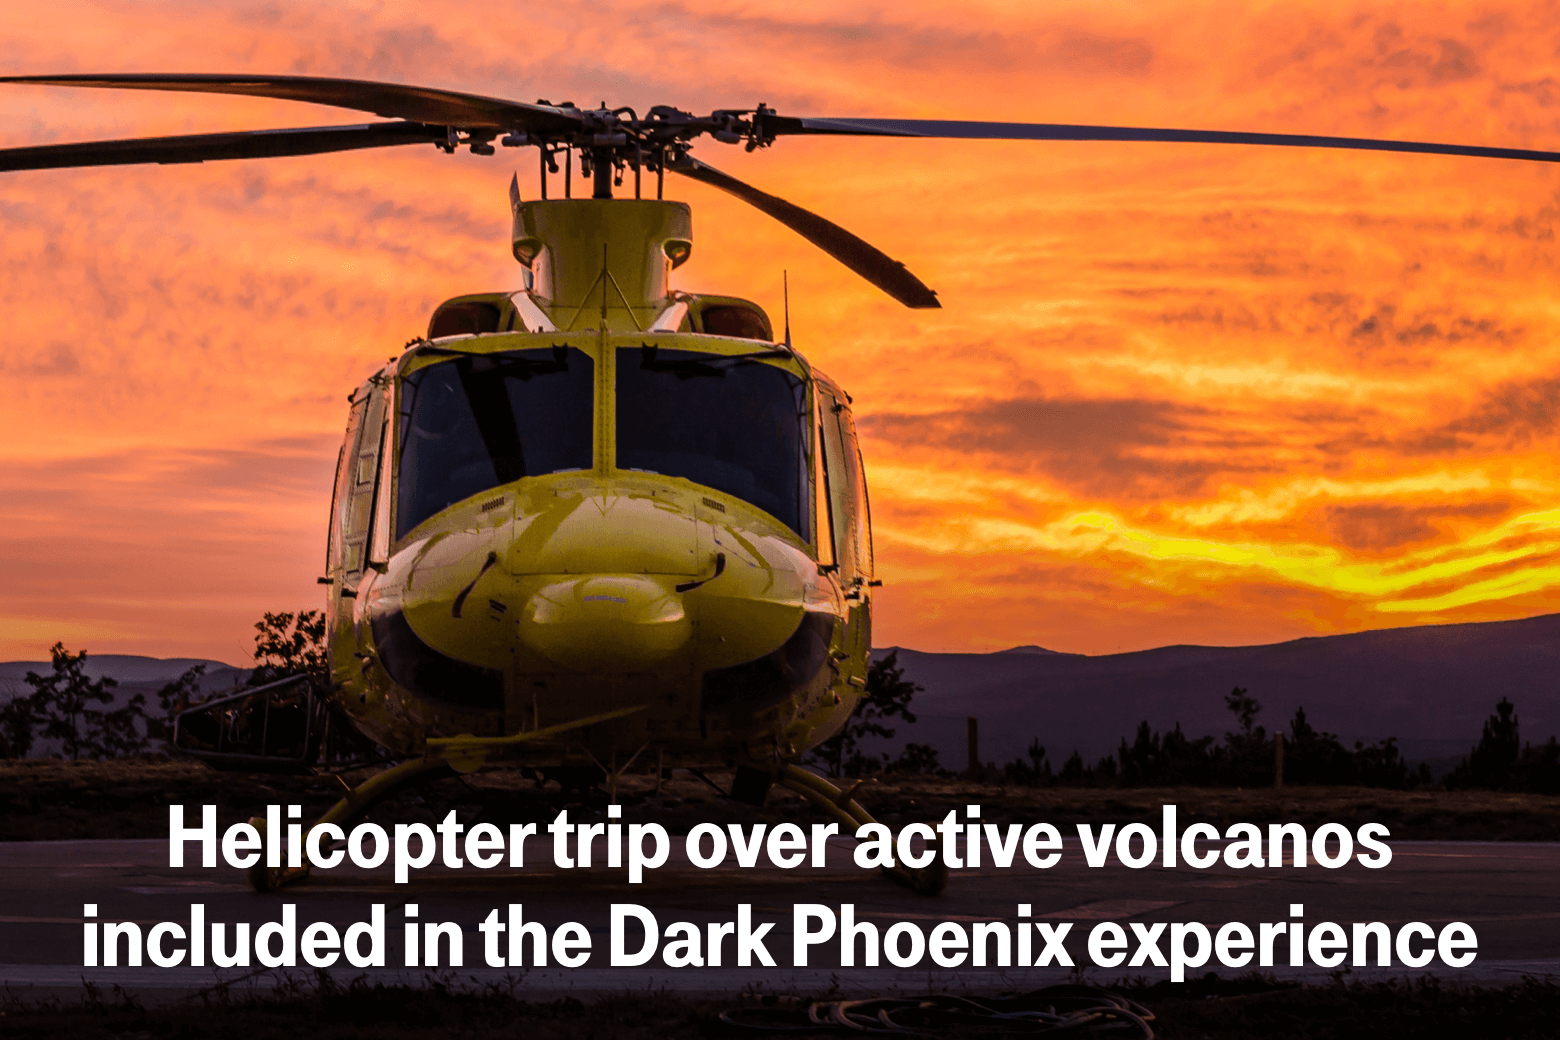 Helicopter trip over active volcanoes included in the Dark Phoenix experience